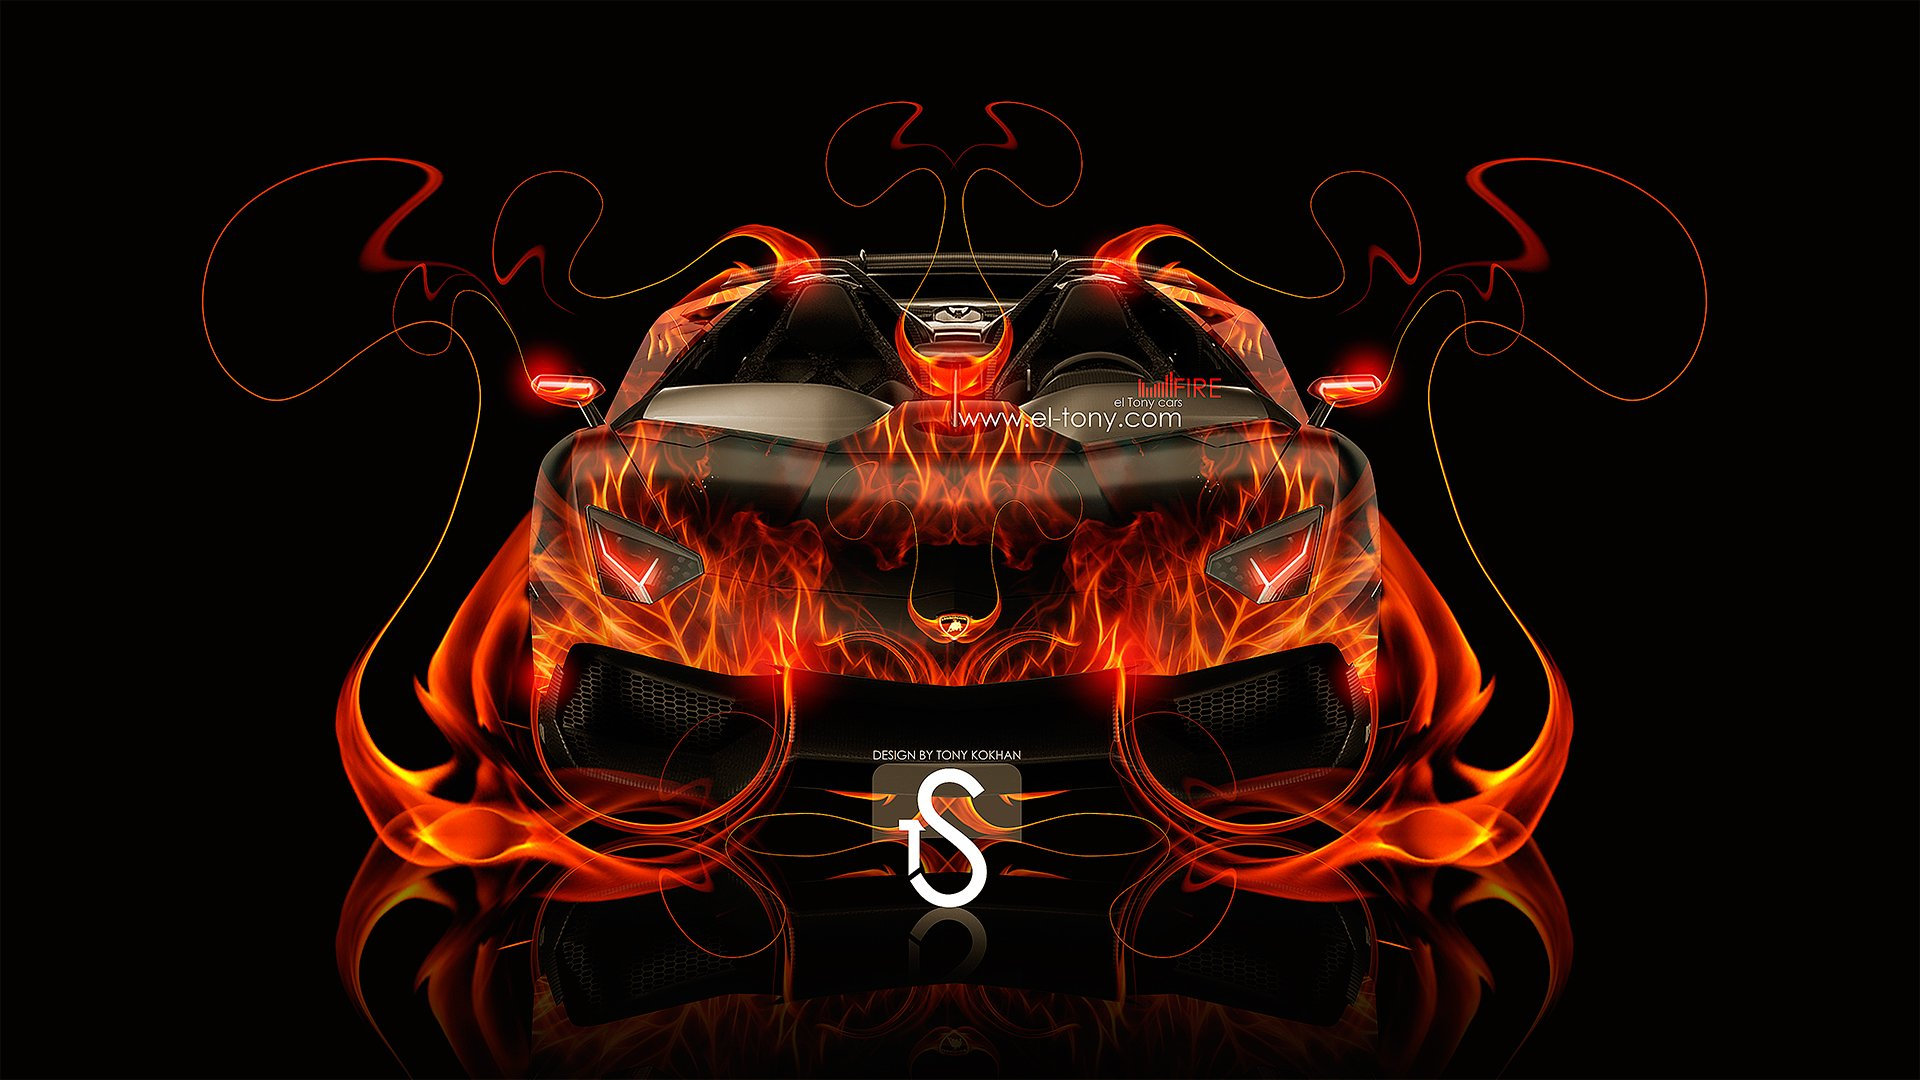 wallpapers lamborghini aventador j fire abstract car 2014 lamborghini 1920x1080